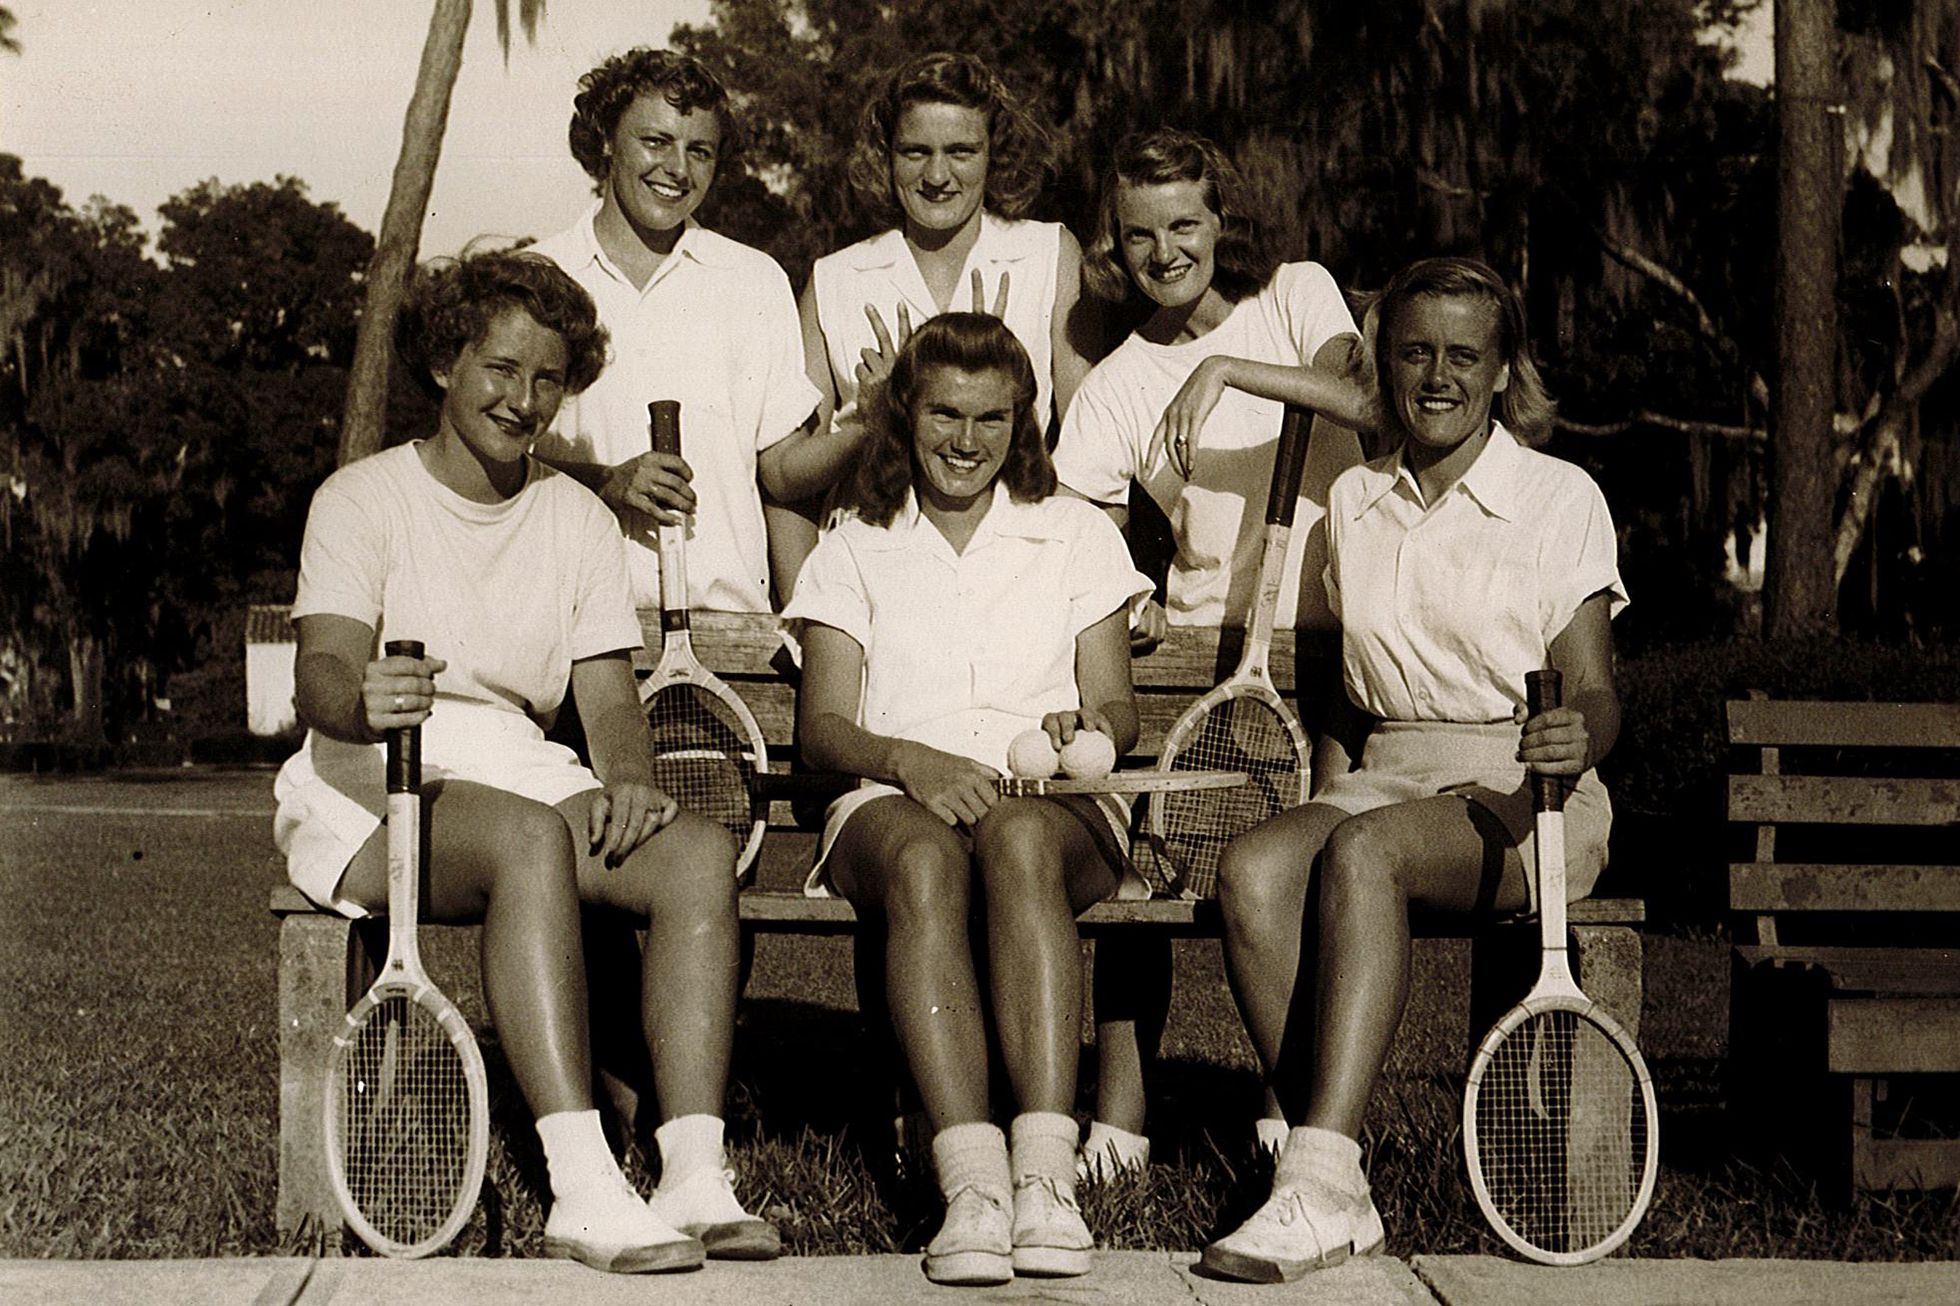 Rollins women's tennis team in the 1940s, including Shirley Fry Irvin '49